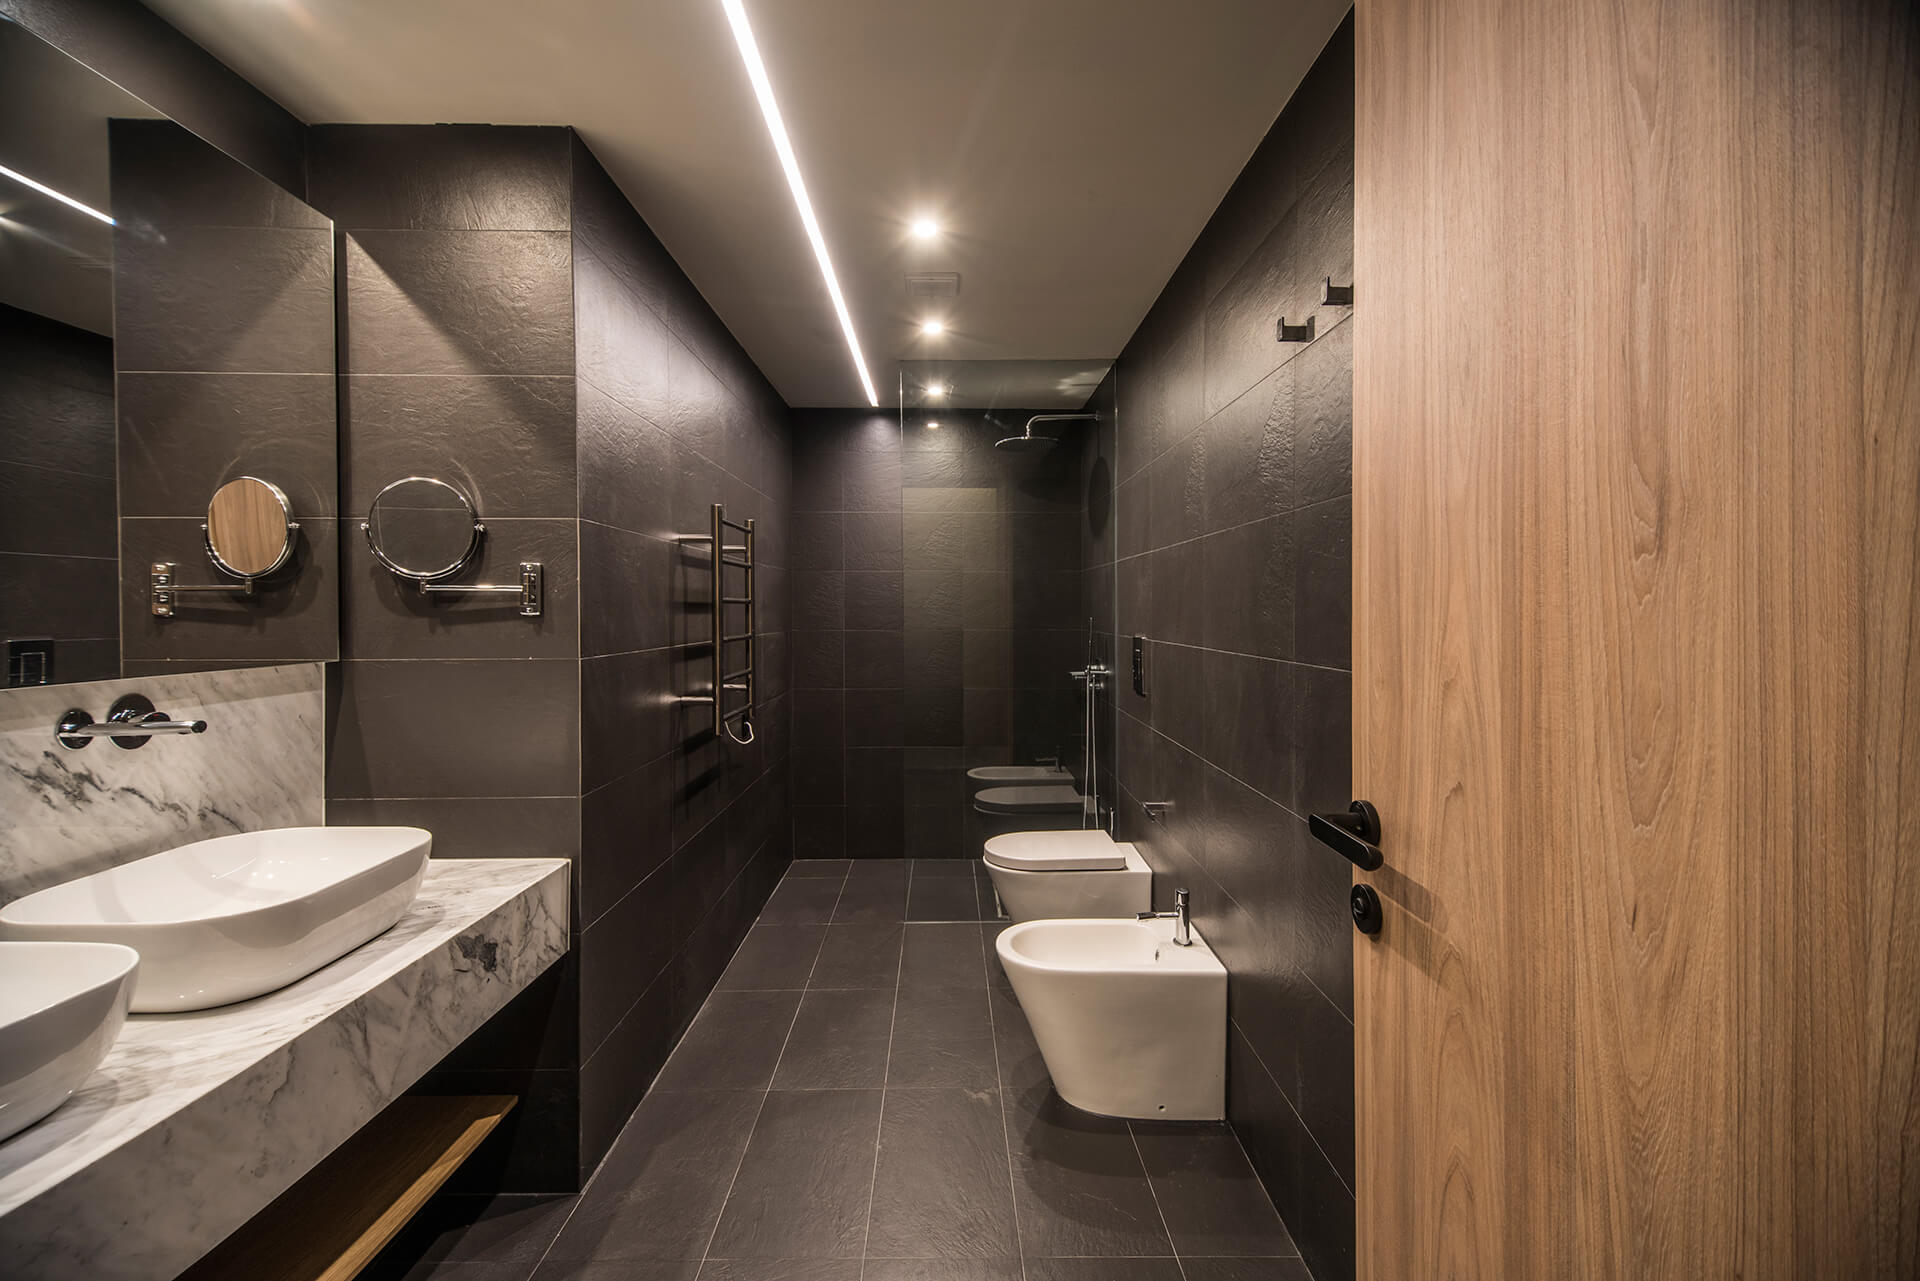 Fortress Suite Bathroom | DAAA Haus wins German Design Award 2020 for Cugó Gran Macina Grand Harbour | STIRworld